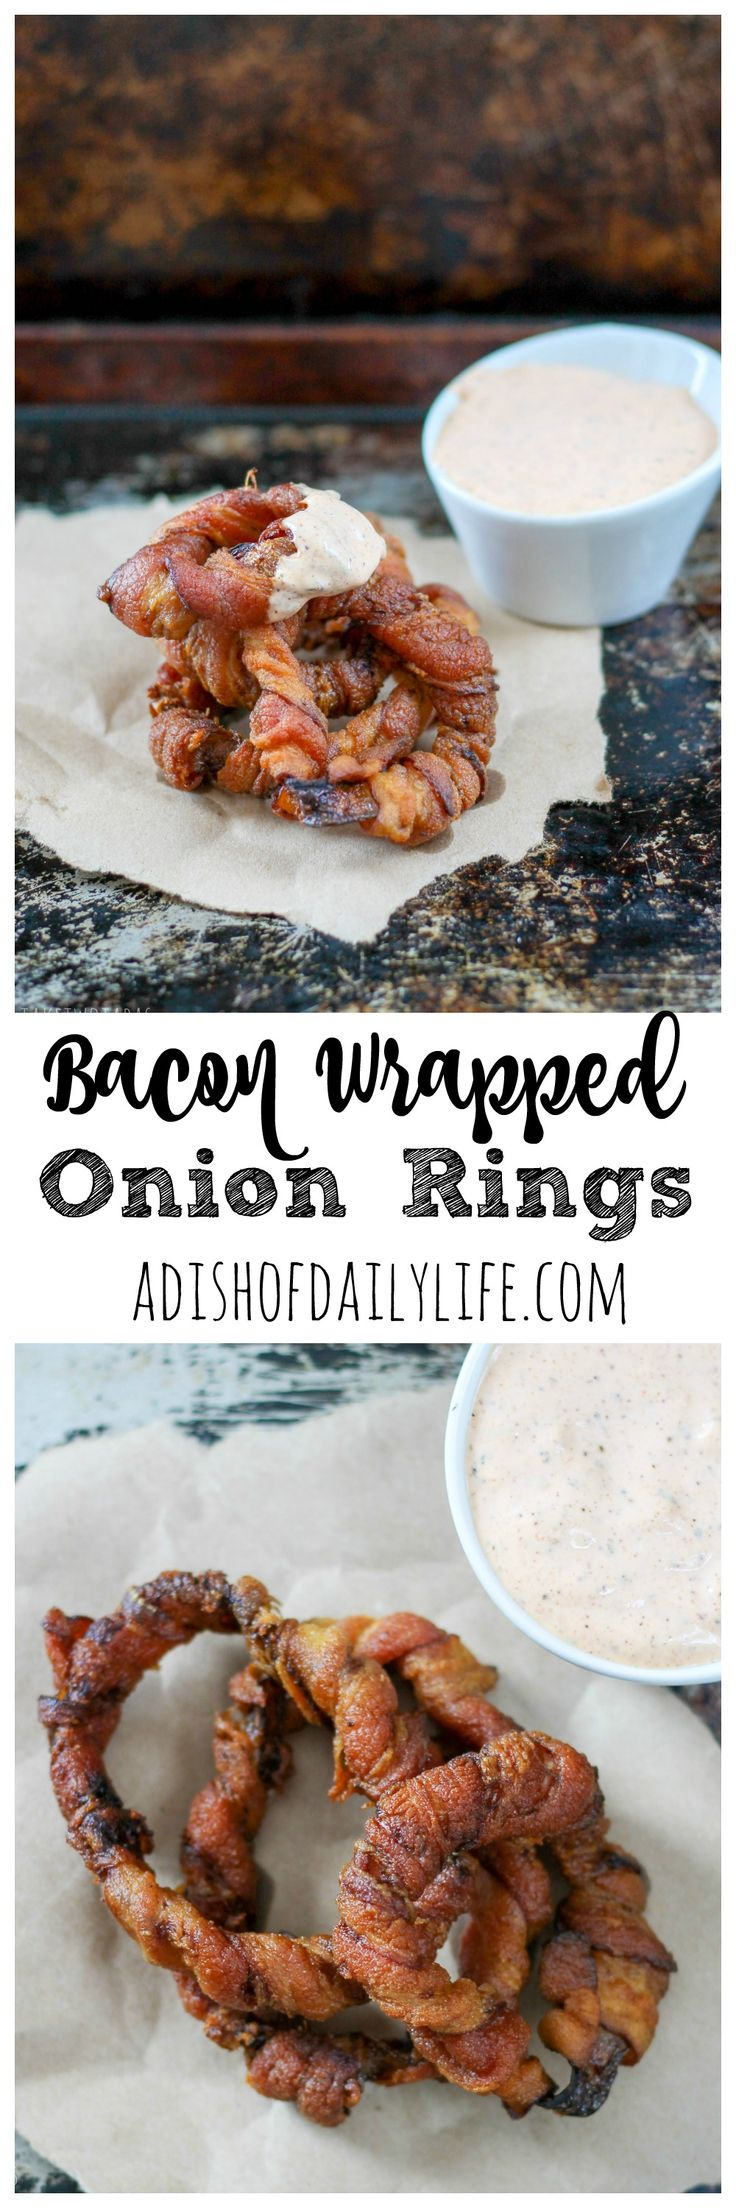 This crispy bacon-wrapped onion rings recipe is the perfect finger food appetizer for a party, as a side dish for your burger, or just an afternoon snack with friends. Dipped in chipotle sauce, they are a crowd-pleaser!